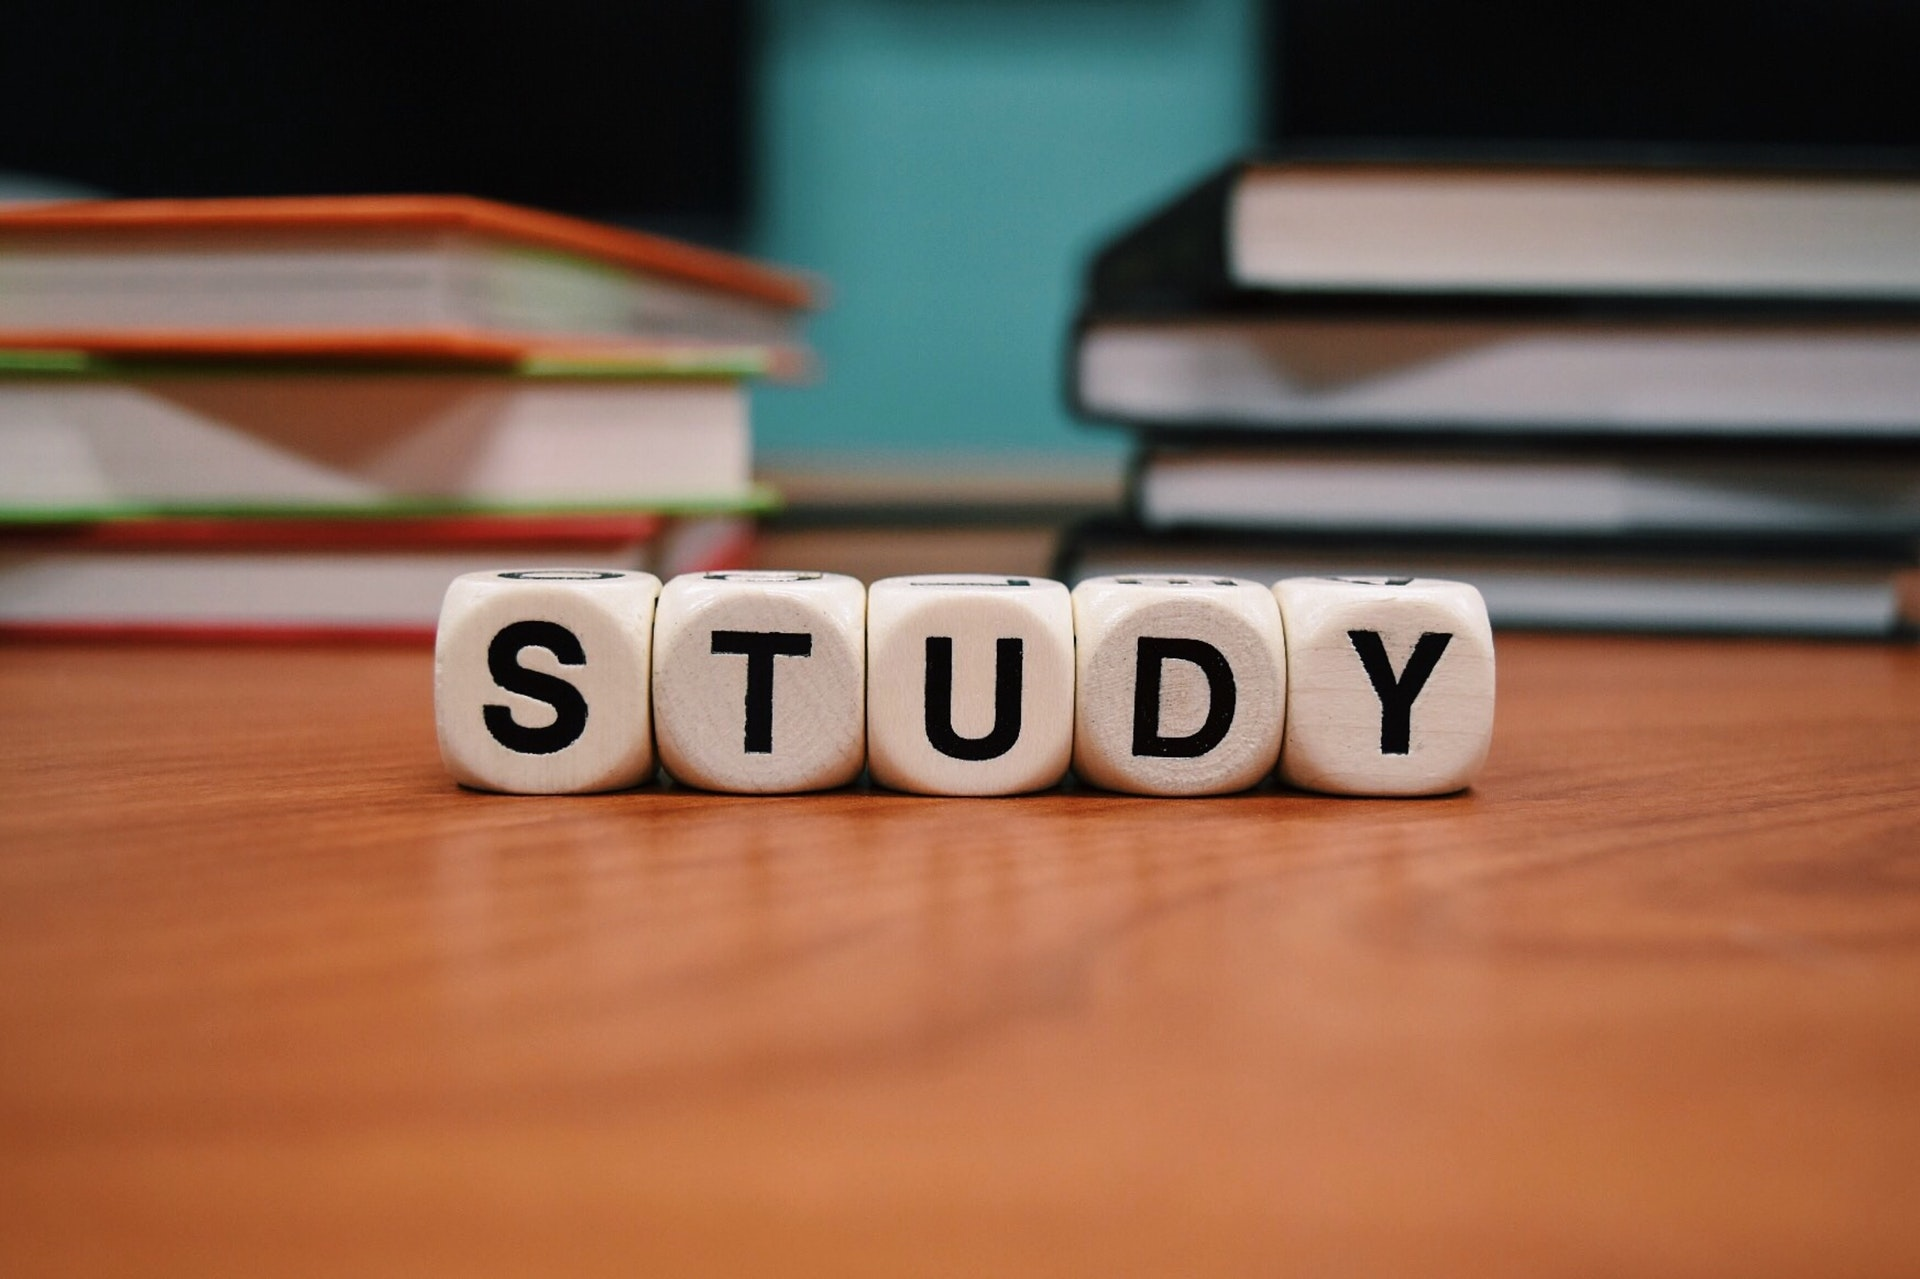 Tips to studying effectively